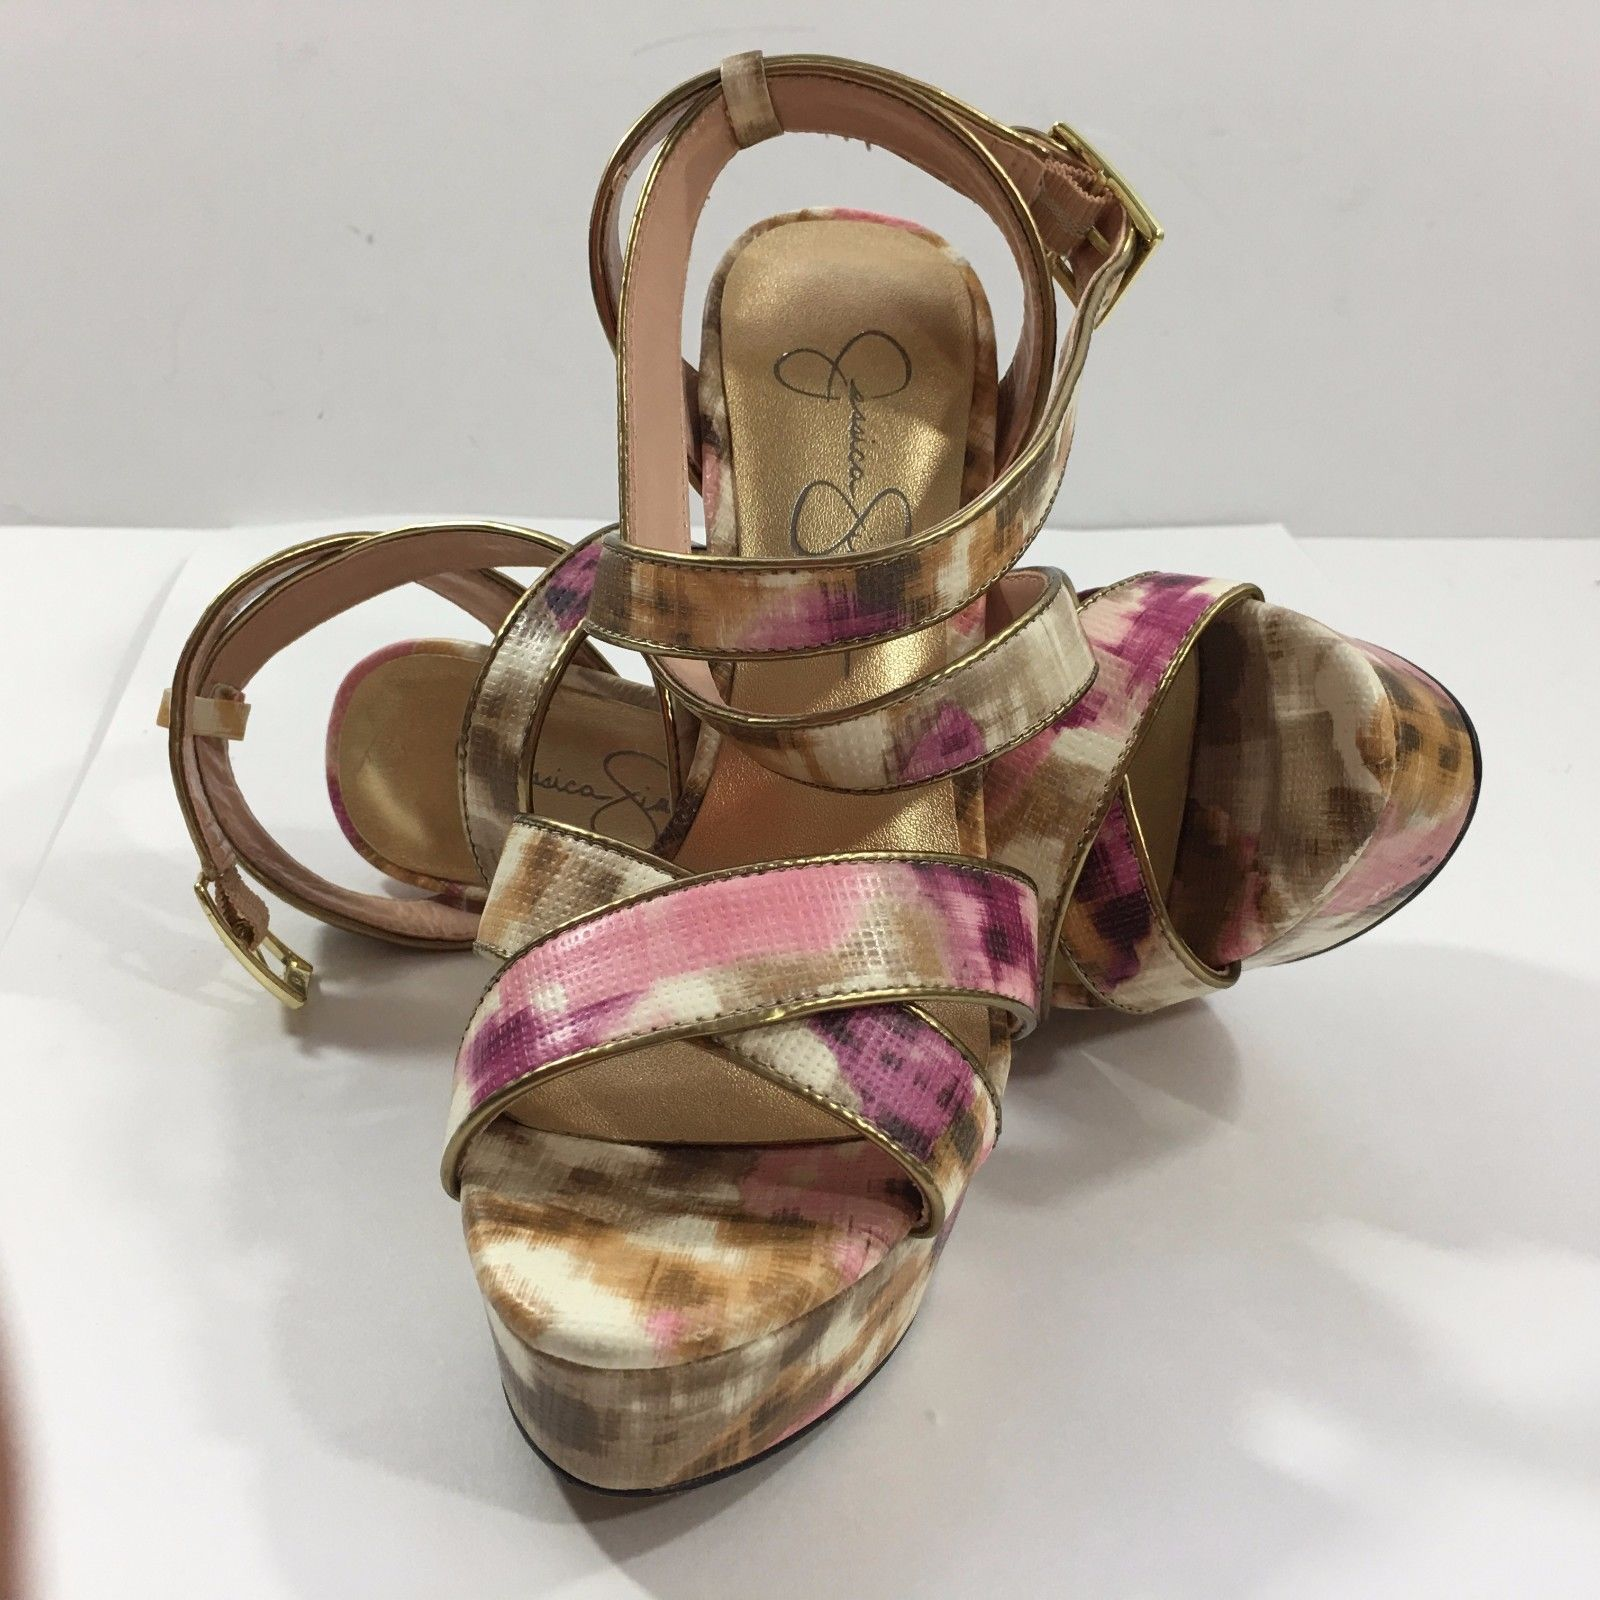 Primary image for Jessica Simpson Pink and Gold Platform Stilletto Sandals (6 1/2B / 36)